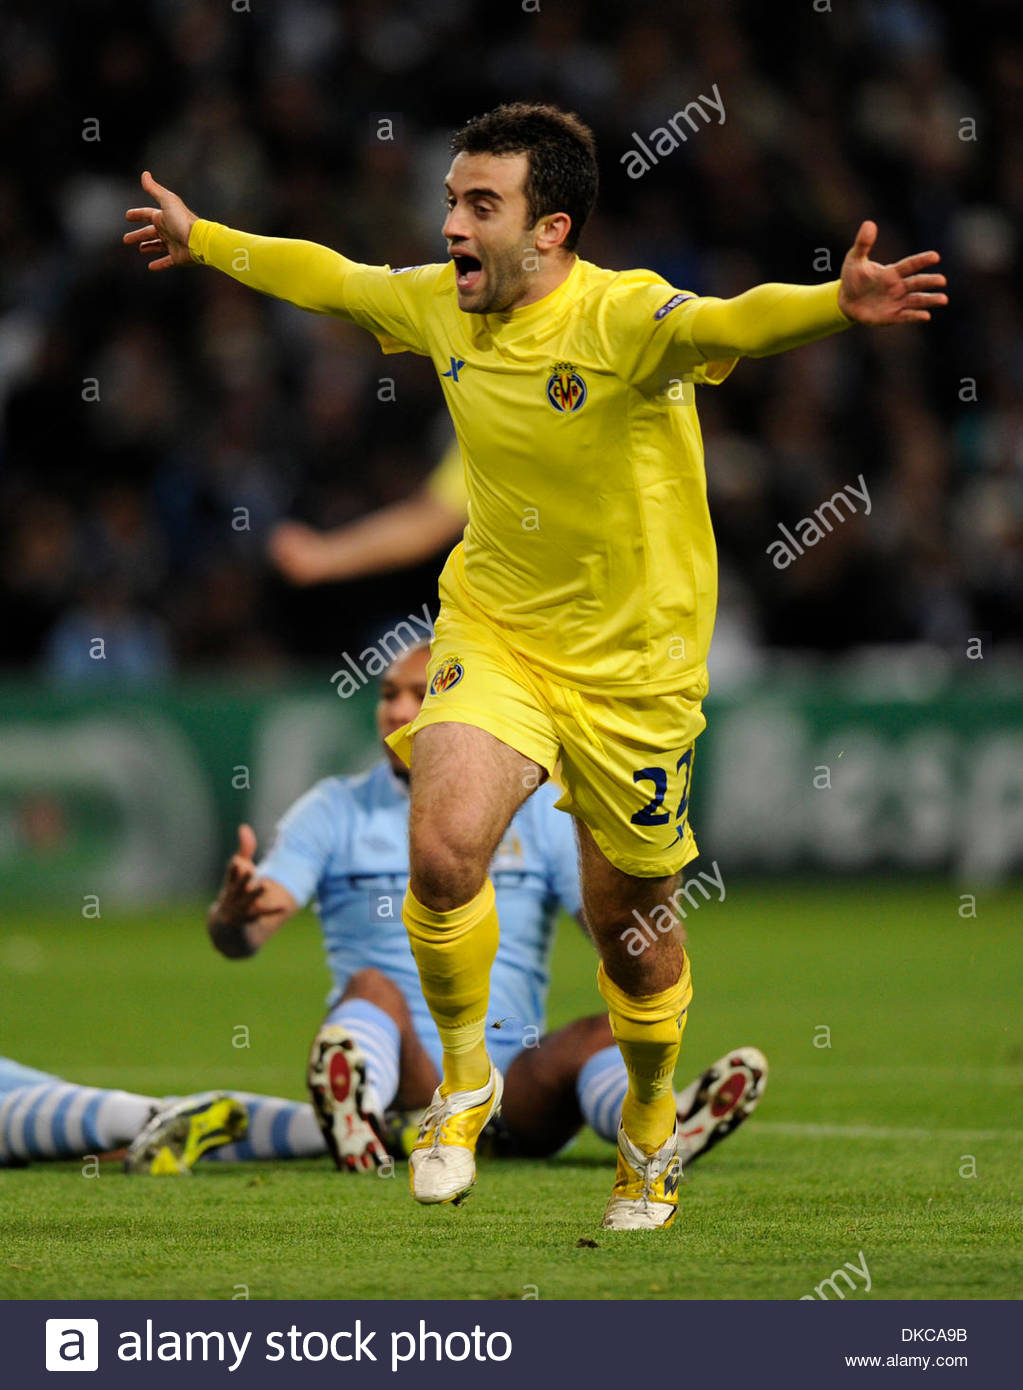 Giuseppe Rossi of Villarreal celebrates the first goal UEFA Stock